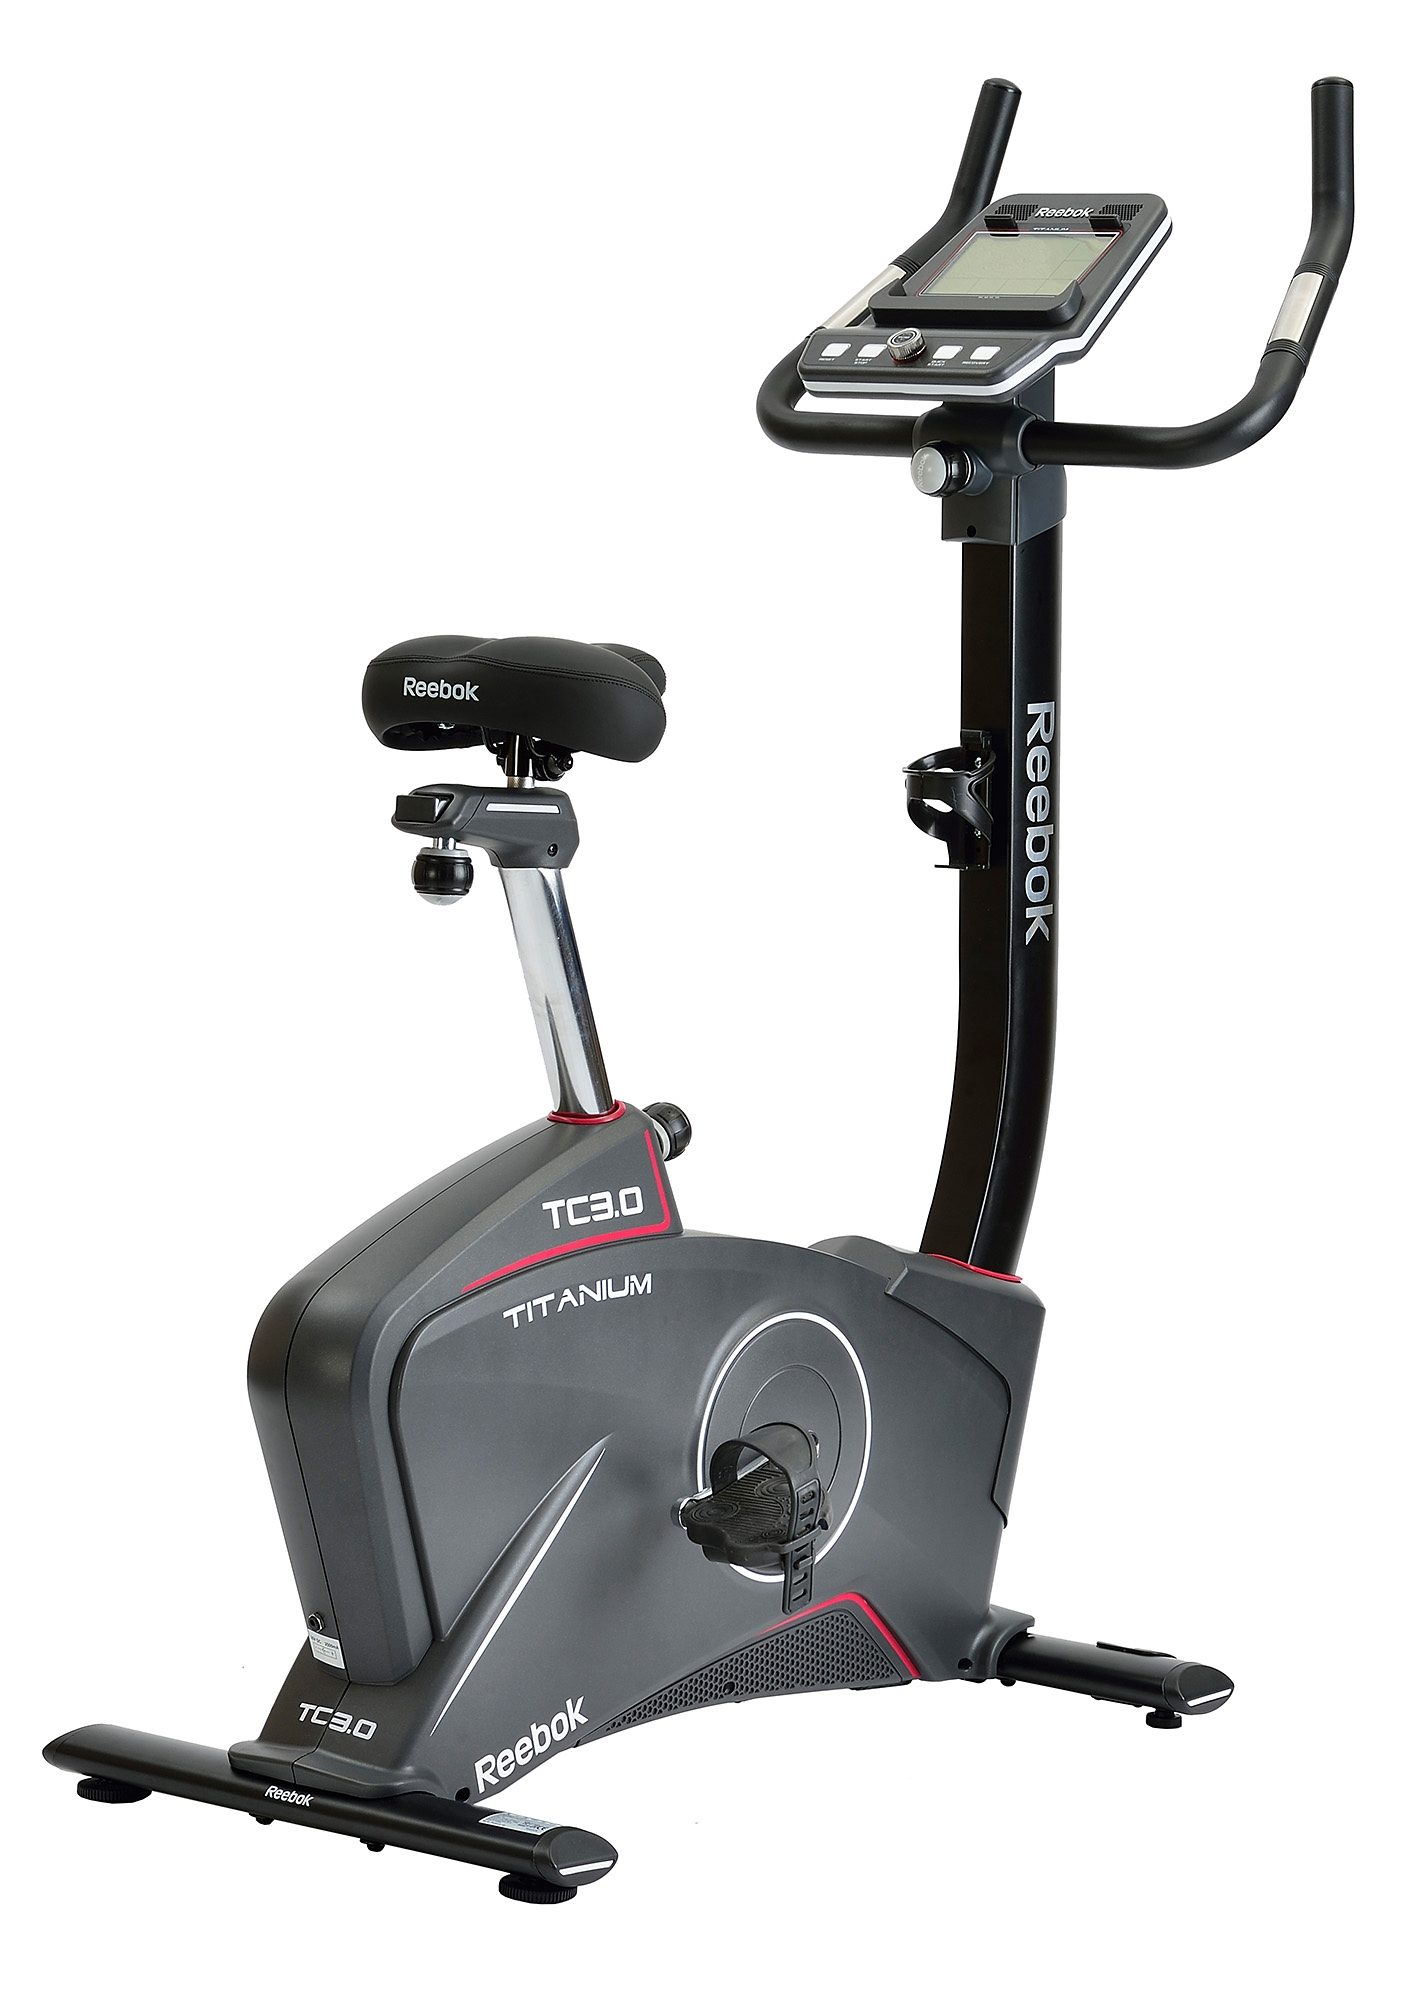 Ergometer, »Titanium Bike TC3.0«, Reebok